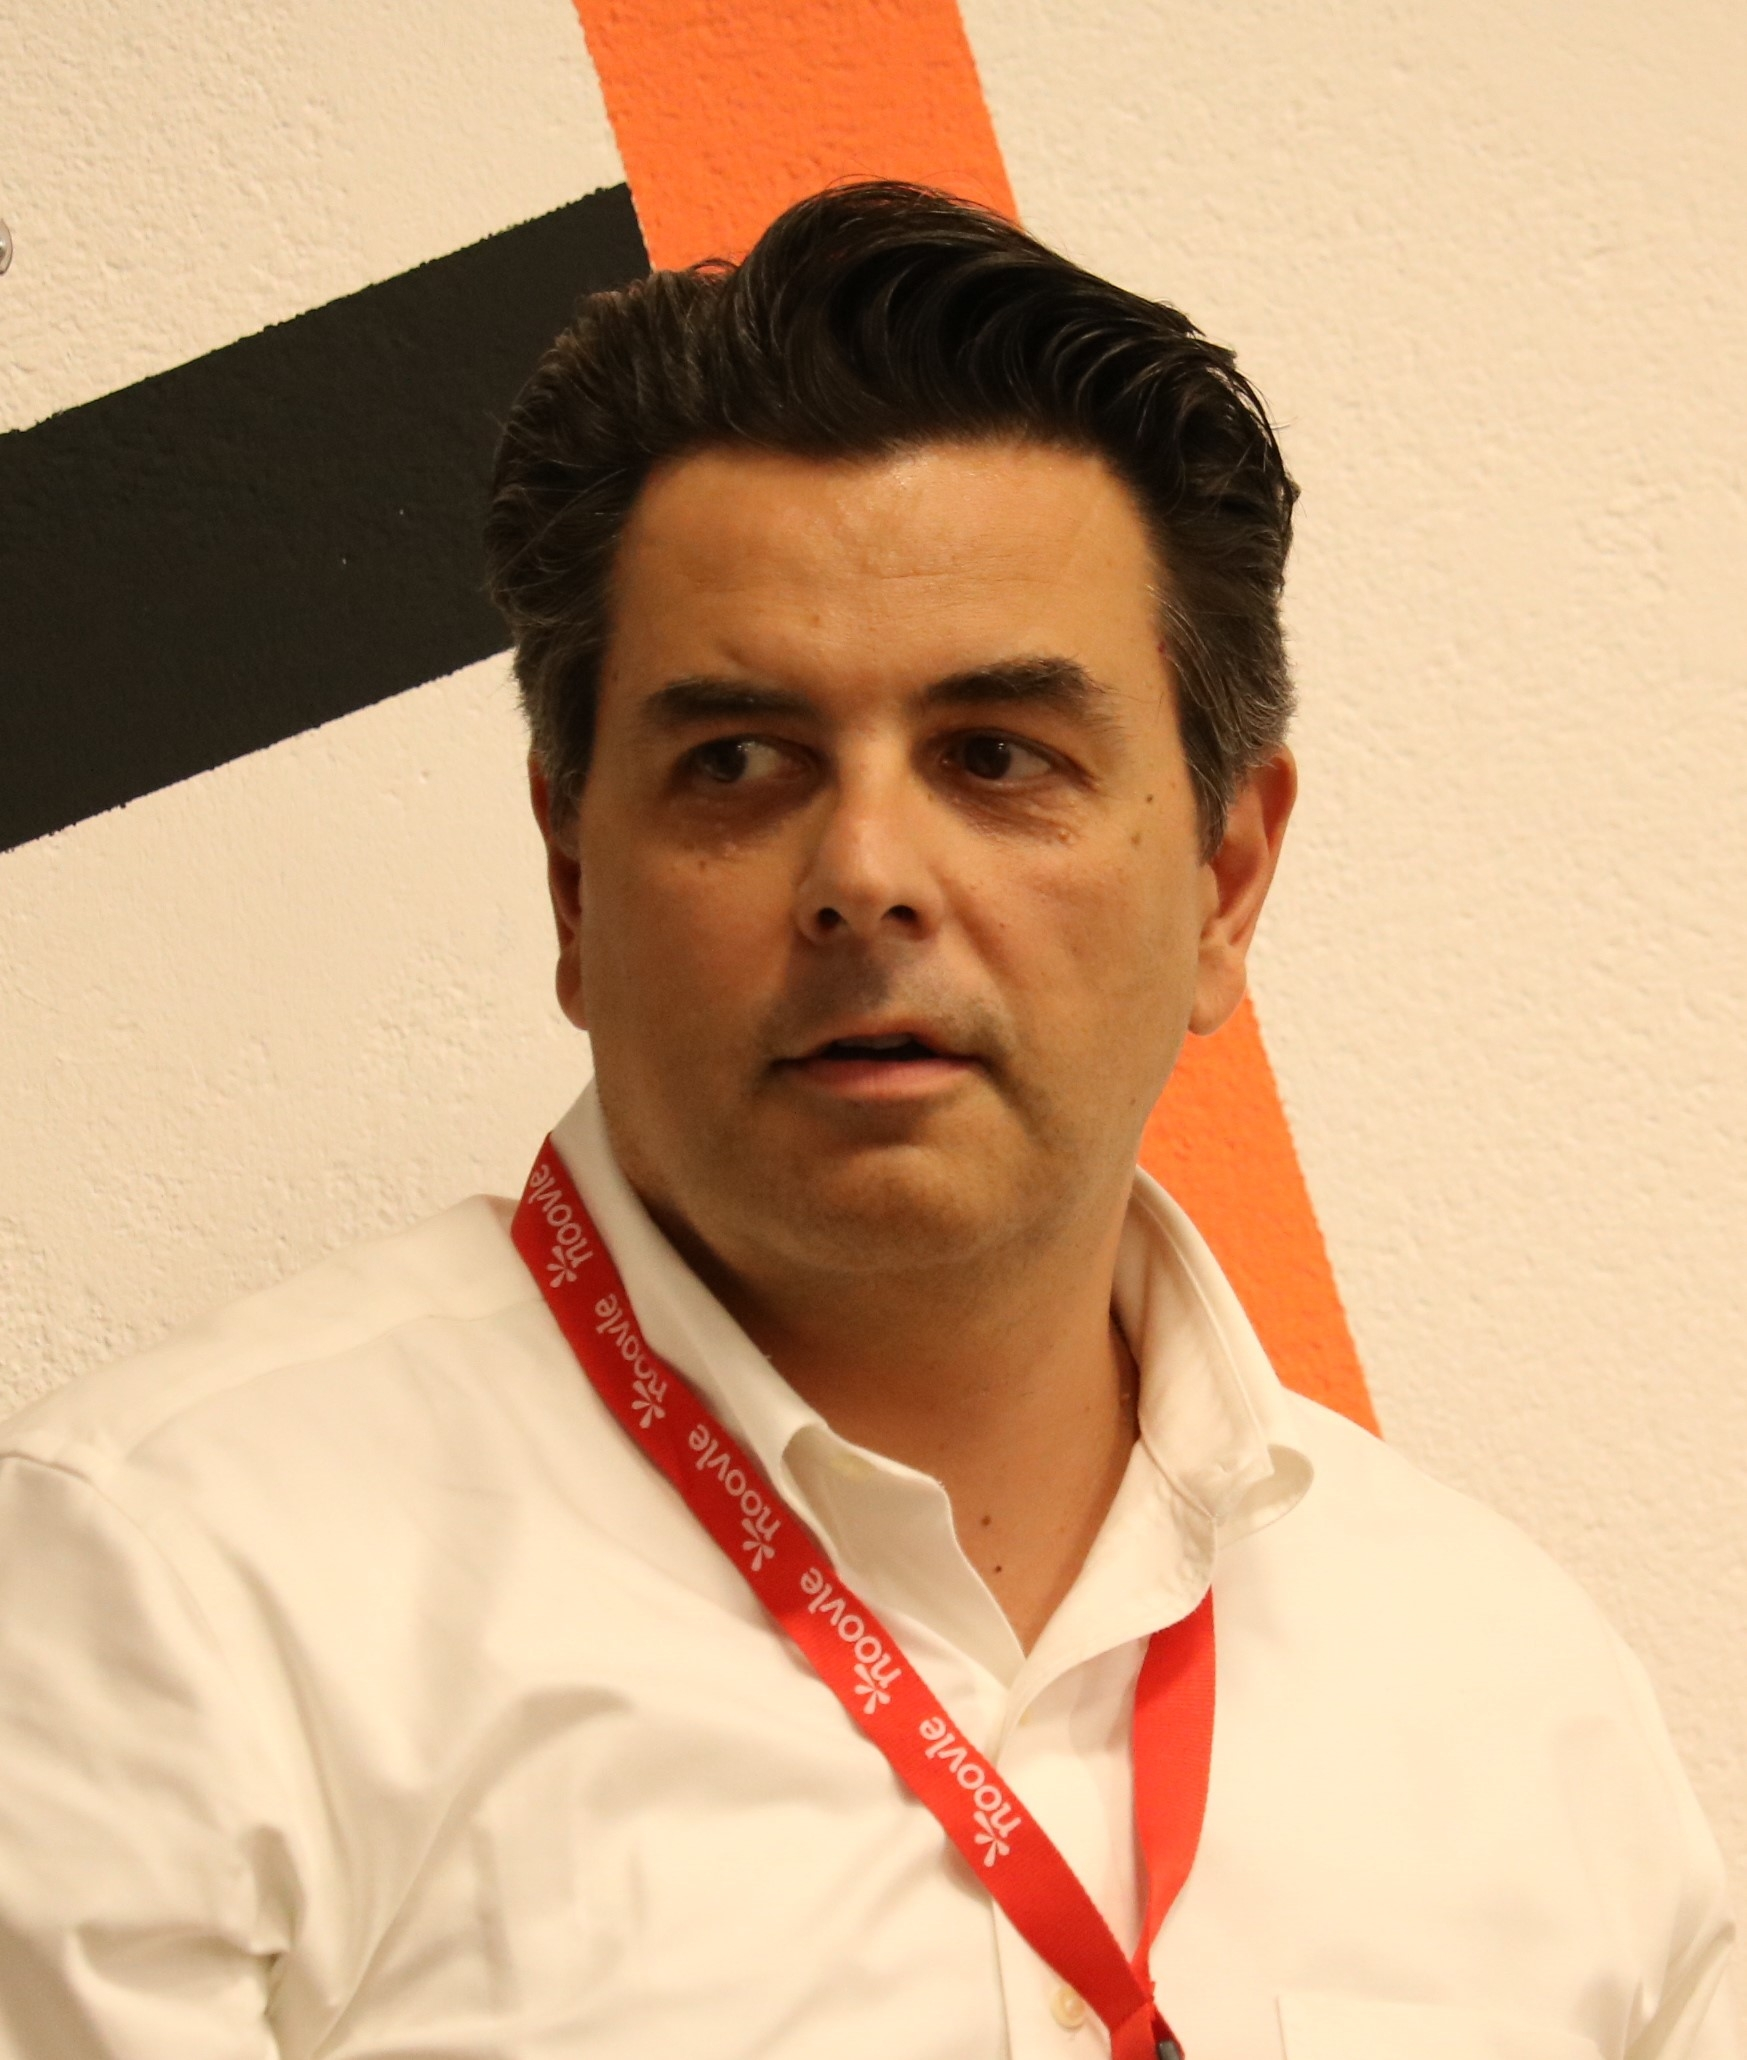 Carlo Torniai, Head of Data Science and Analytics di Pirelli